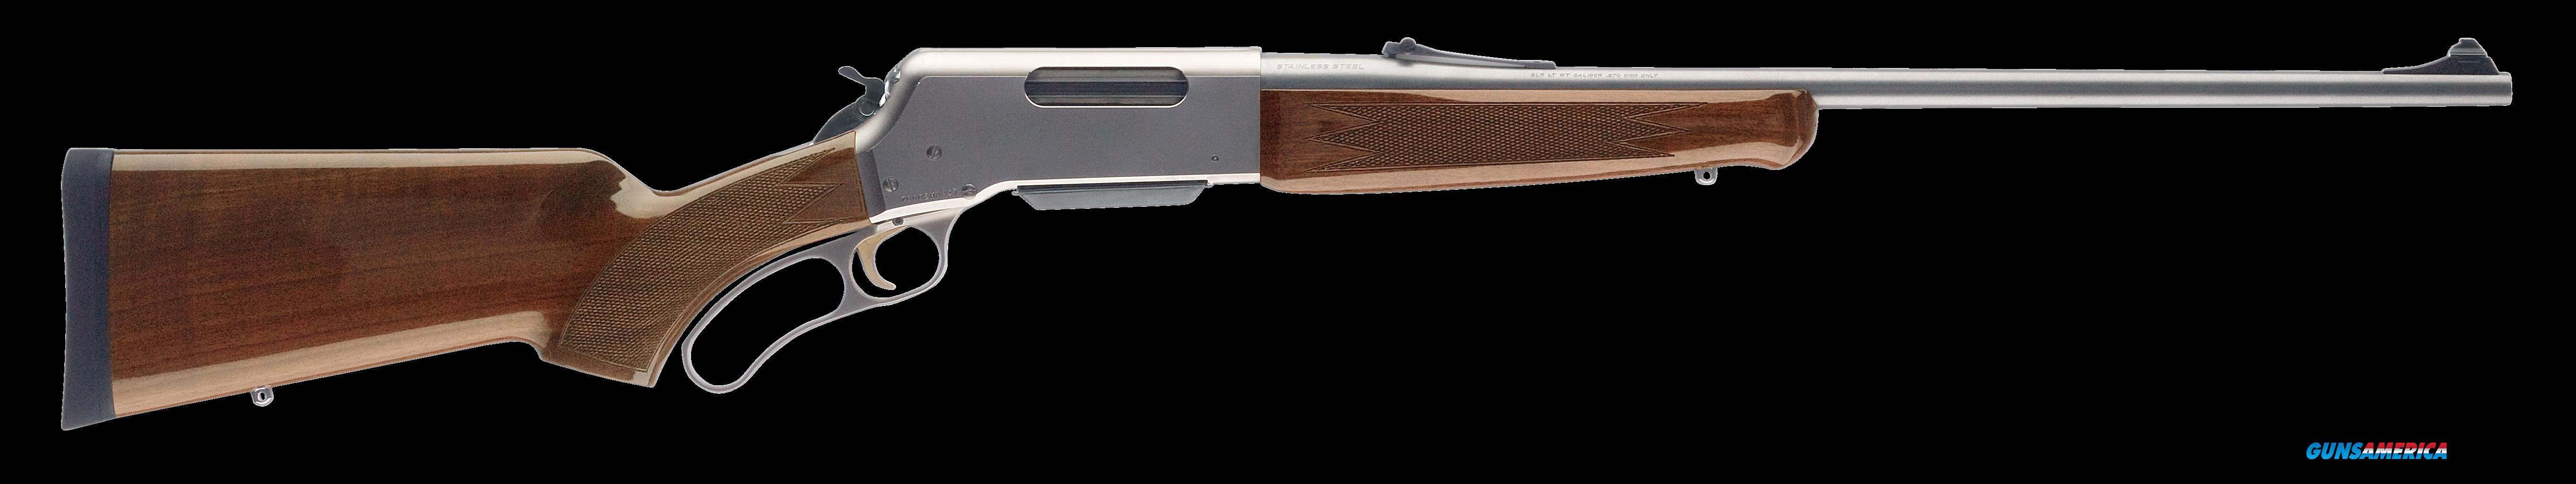 "Browning 034018109 BLR Lightweight Stainless with Pistol Grip Lever 22-250 Remington 20"" 4+1 Walnut  Guns > Rifles > Browning Rifles > Lever Action"